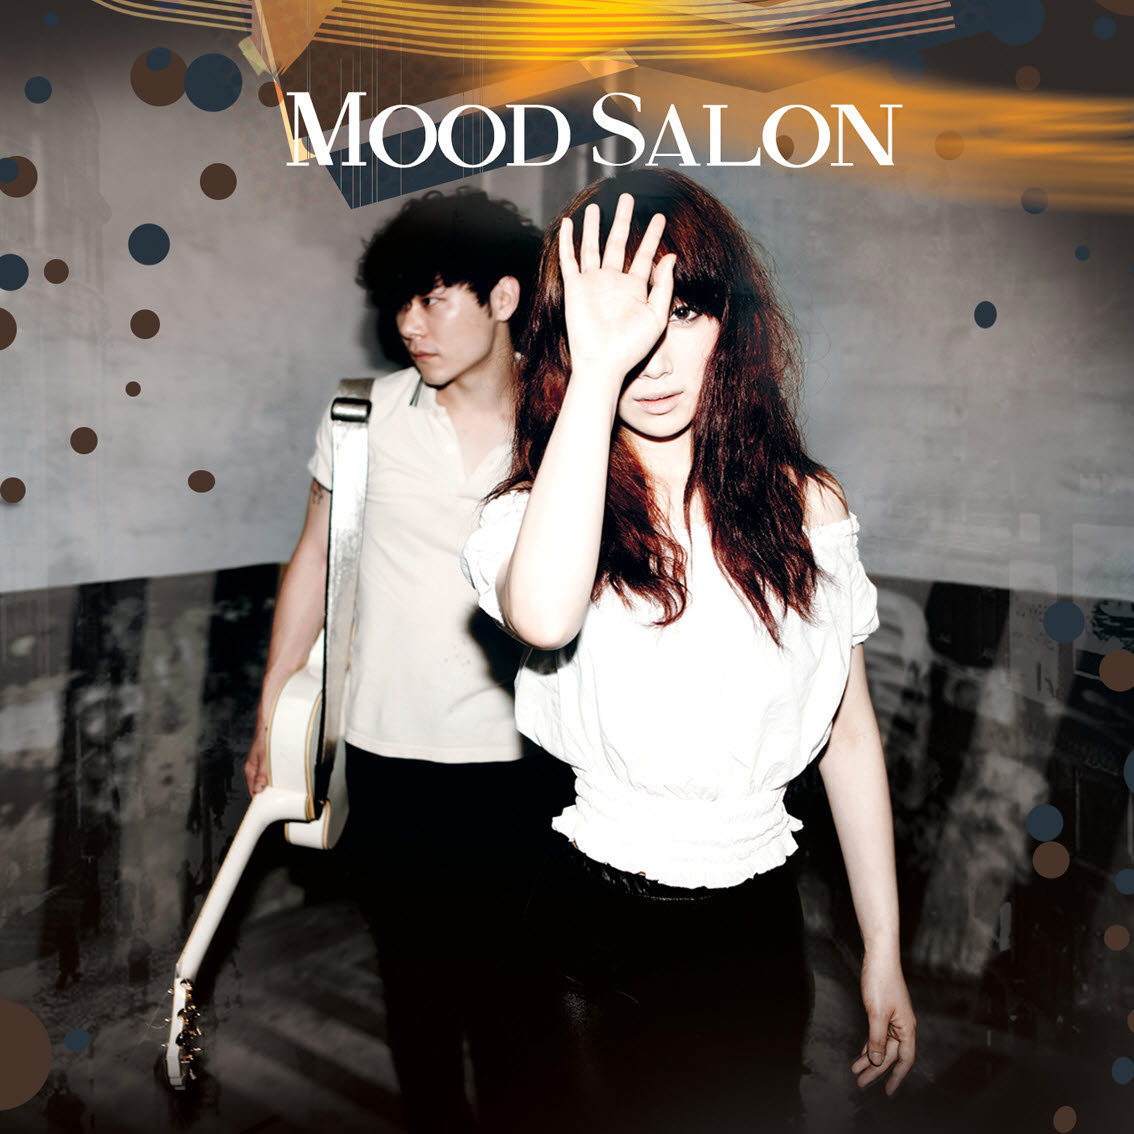 mood salon